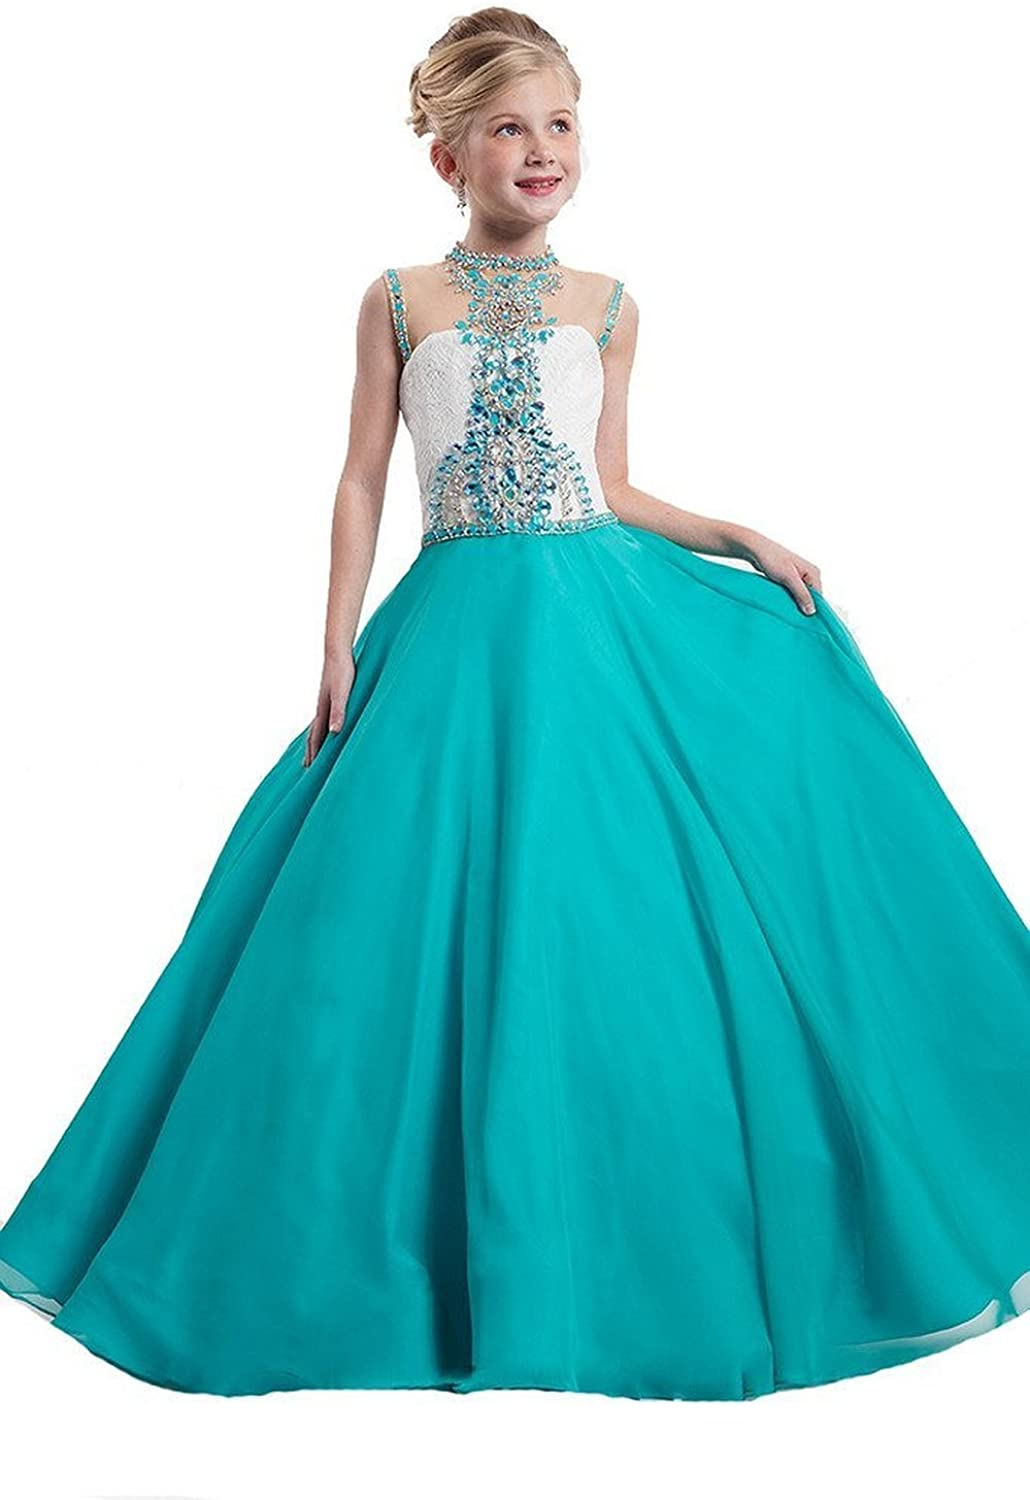 WZY Girls Illusion Neckline Pageant Gown Kids Party Ball Gowns Girls Pageant Dresses